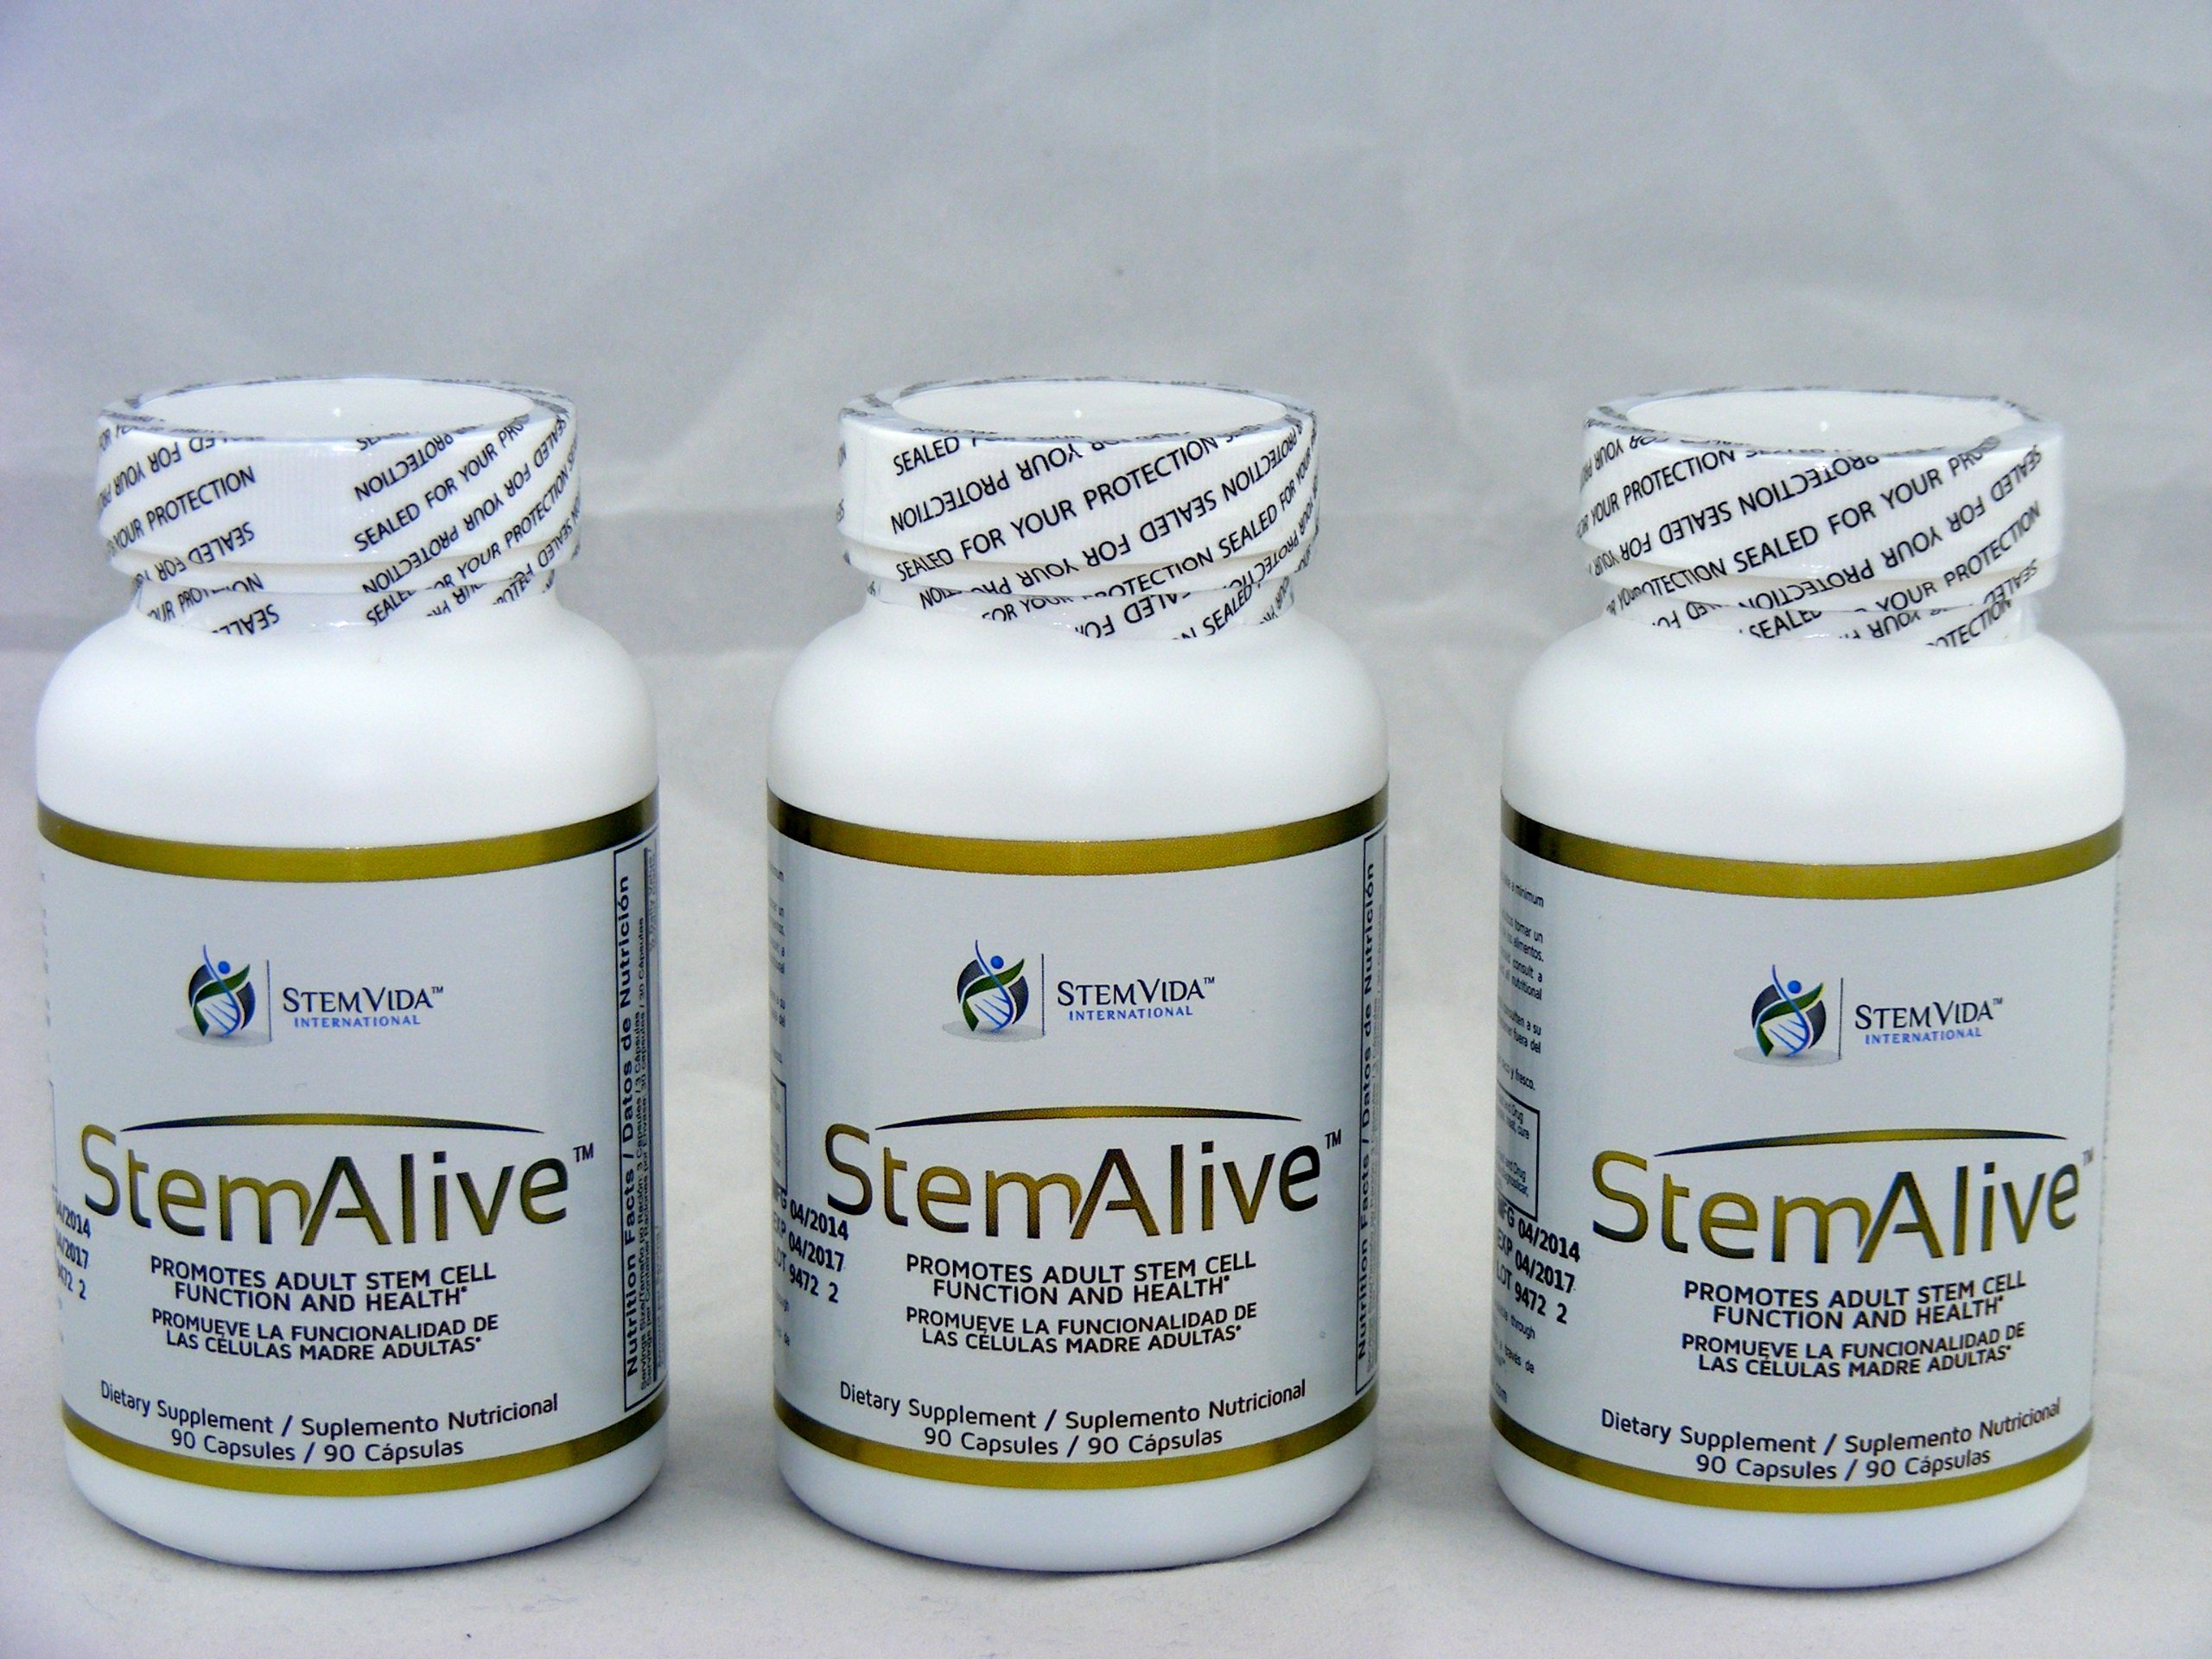 Stemstem Alive Supplements LOT of 3 New & Factory Sealedalive 90 Capsules